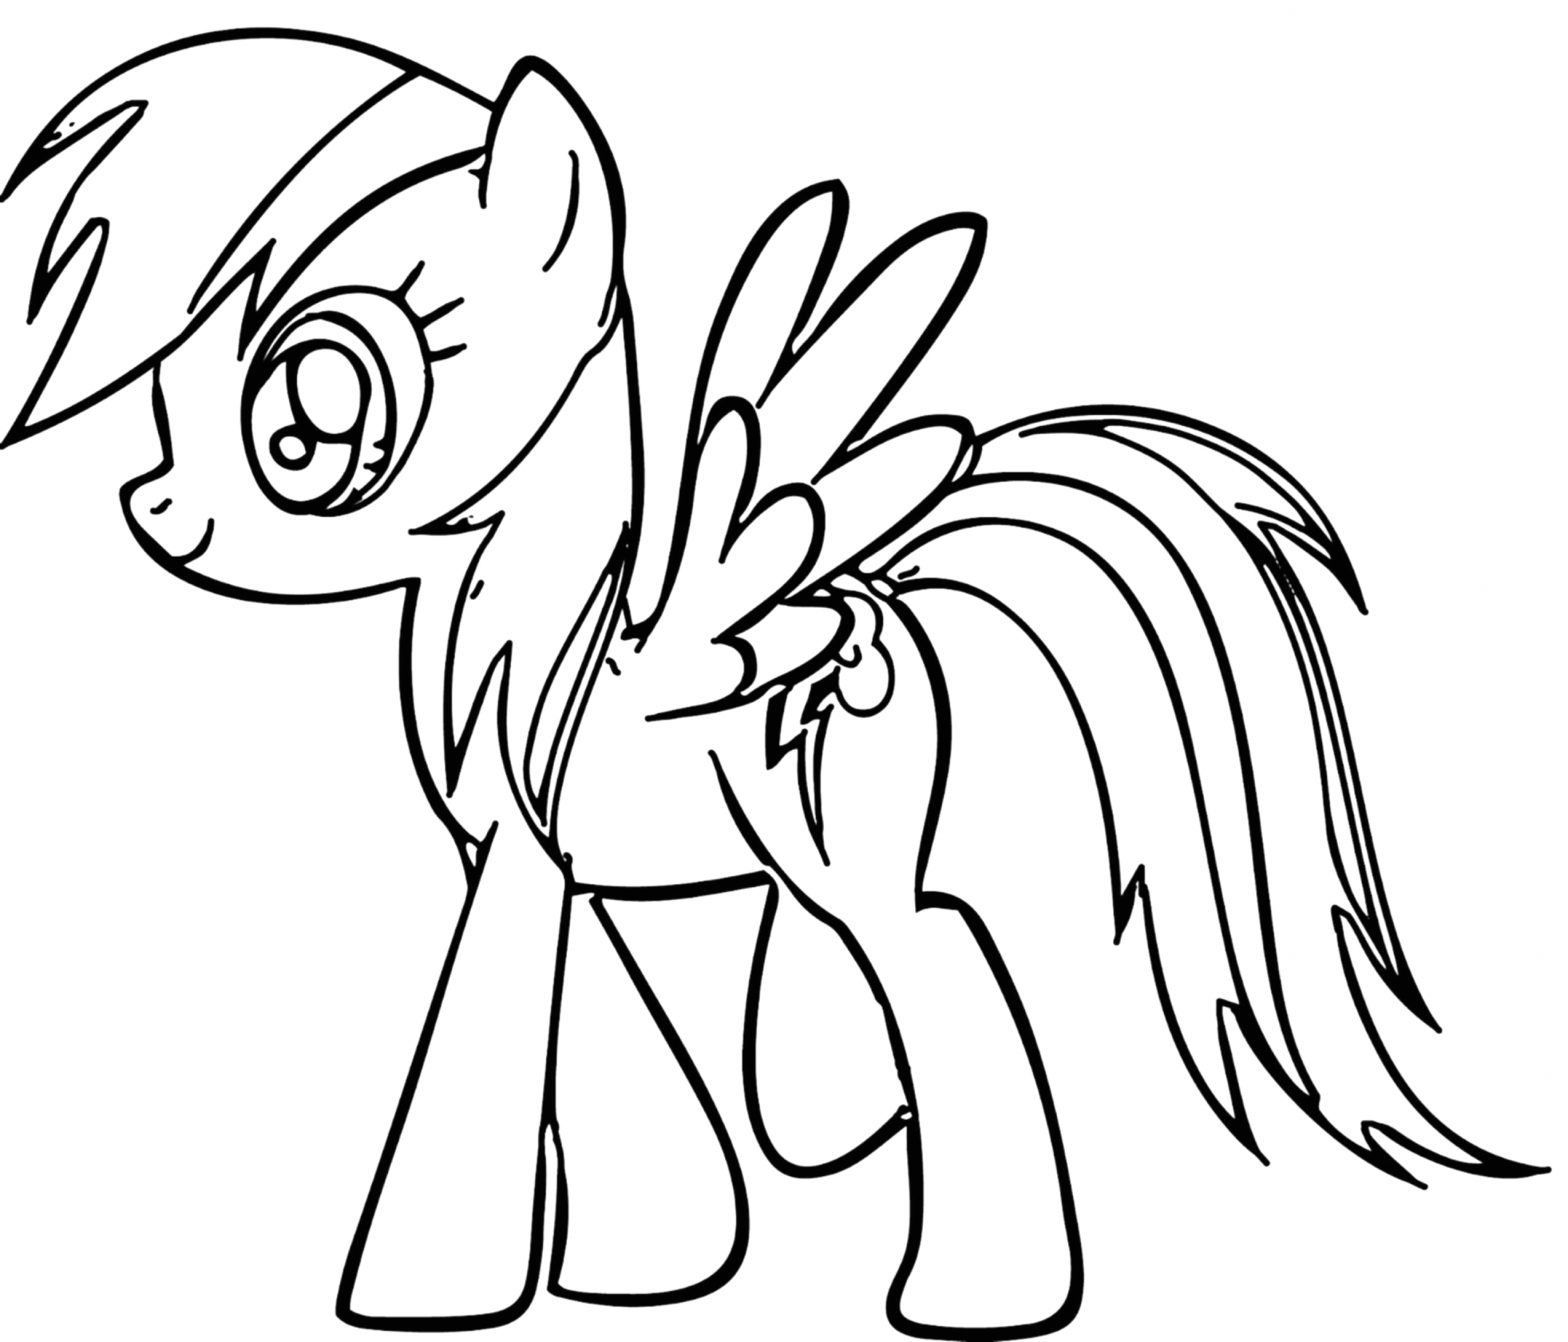 My Little Pony Coloring Pages Rainbow Dash Rainbow Dash Coloring Pages Best Coloring Pages for Kids